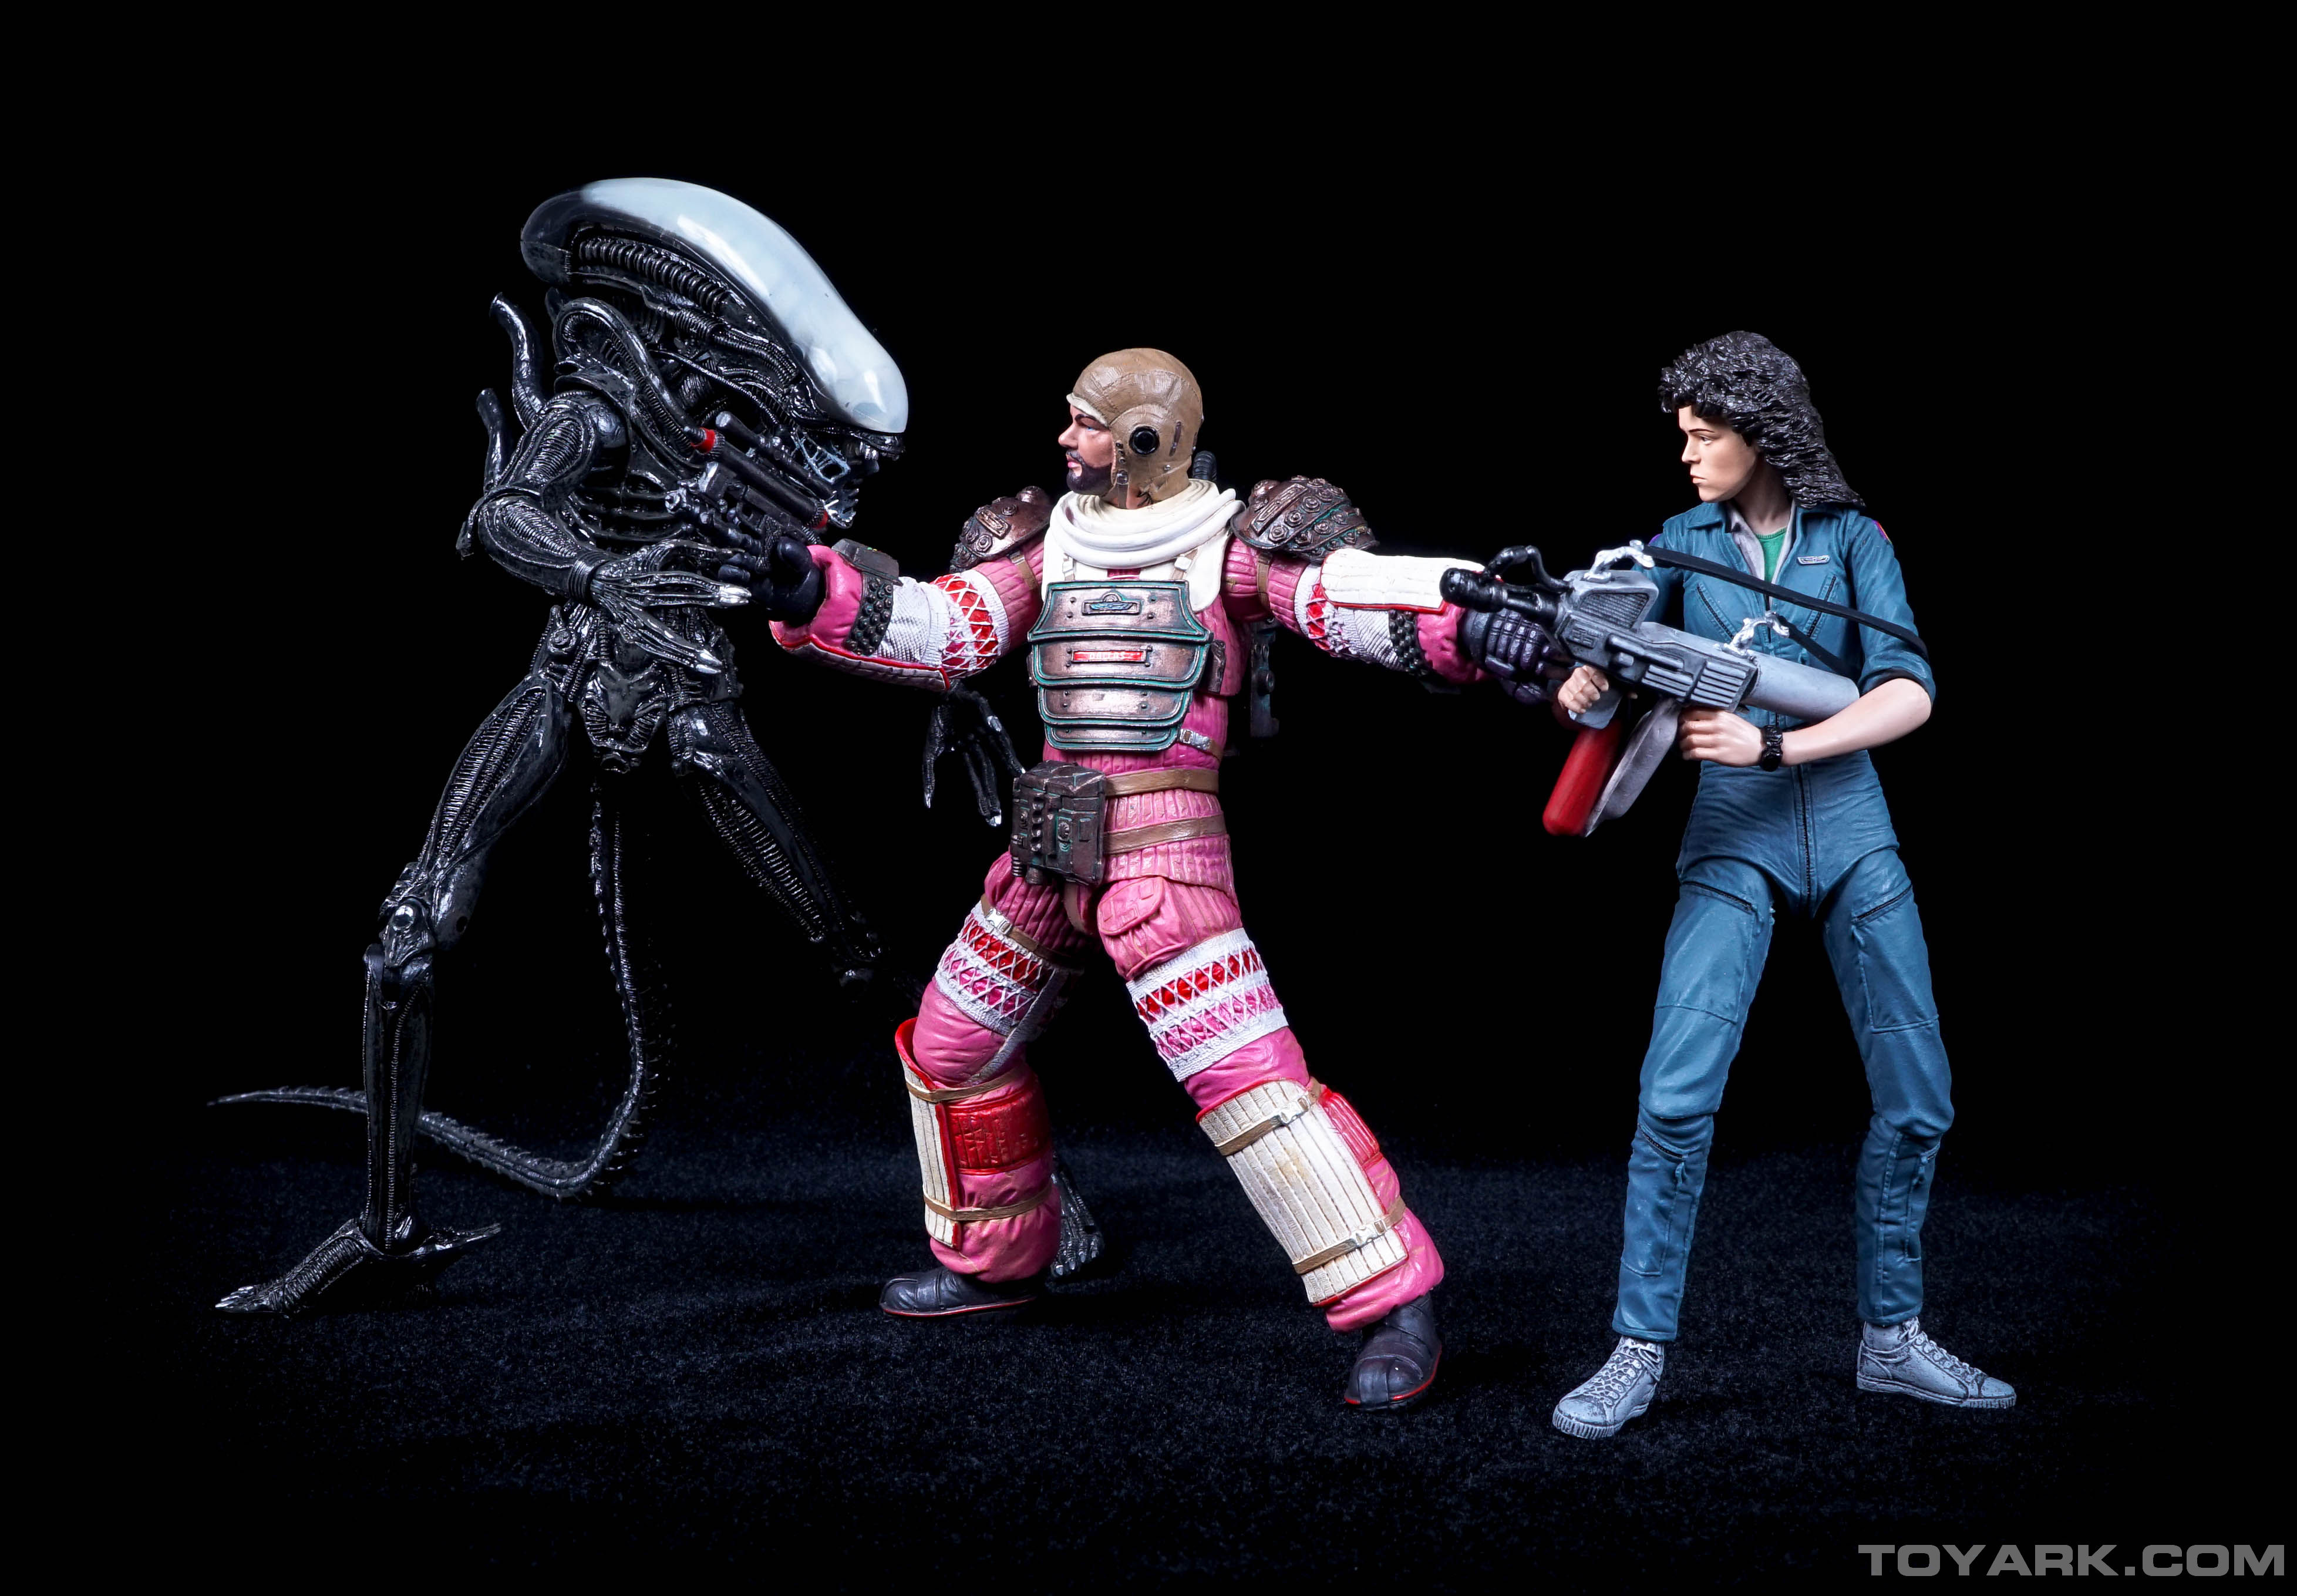 http://news.toyark.com/wp-content/uploads/sites/4/2015/06/Aliens-Series-4-by-NECA-092.jpg